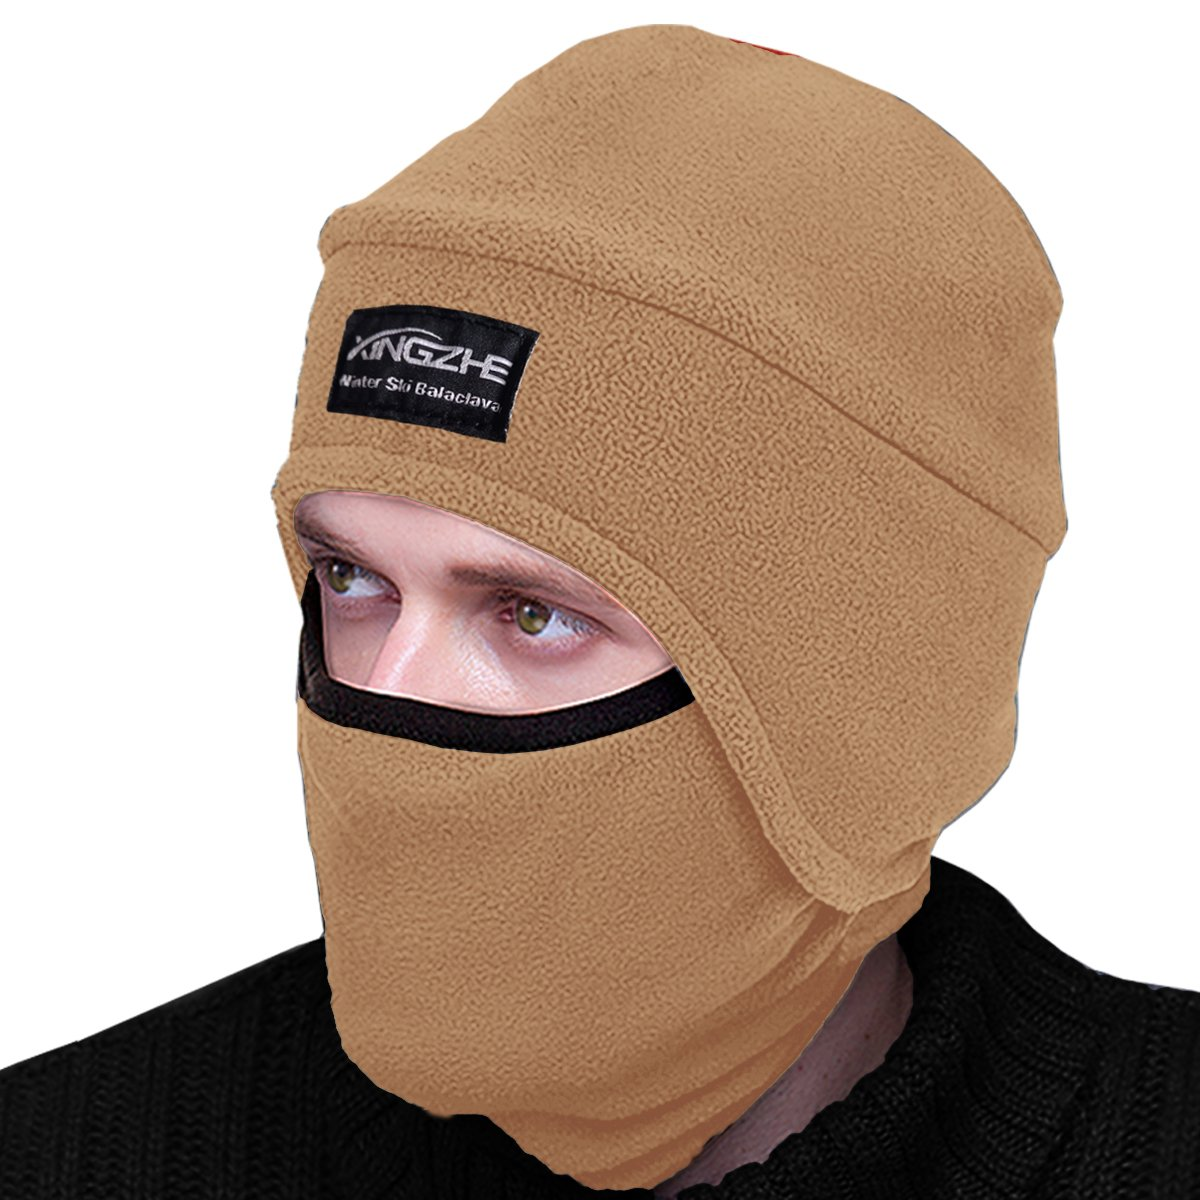 Unigear Dust Mask with 2 Activated Carbon Filters and Nose Sponges